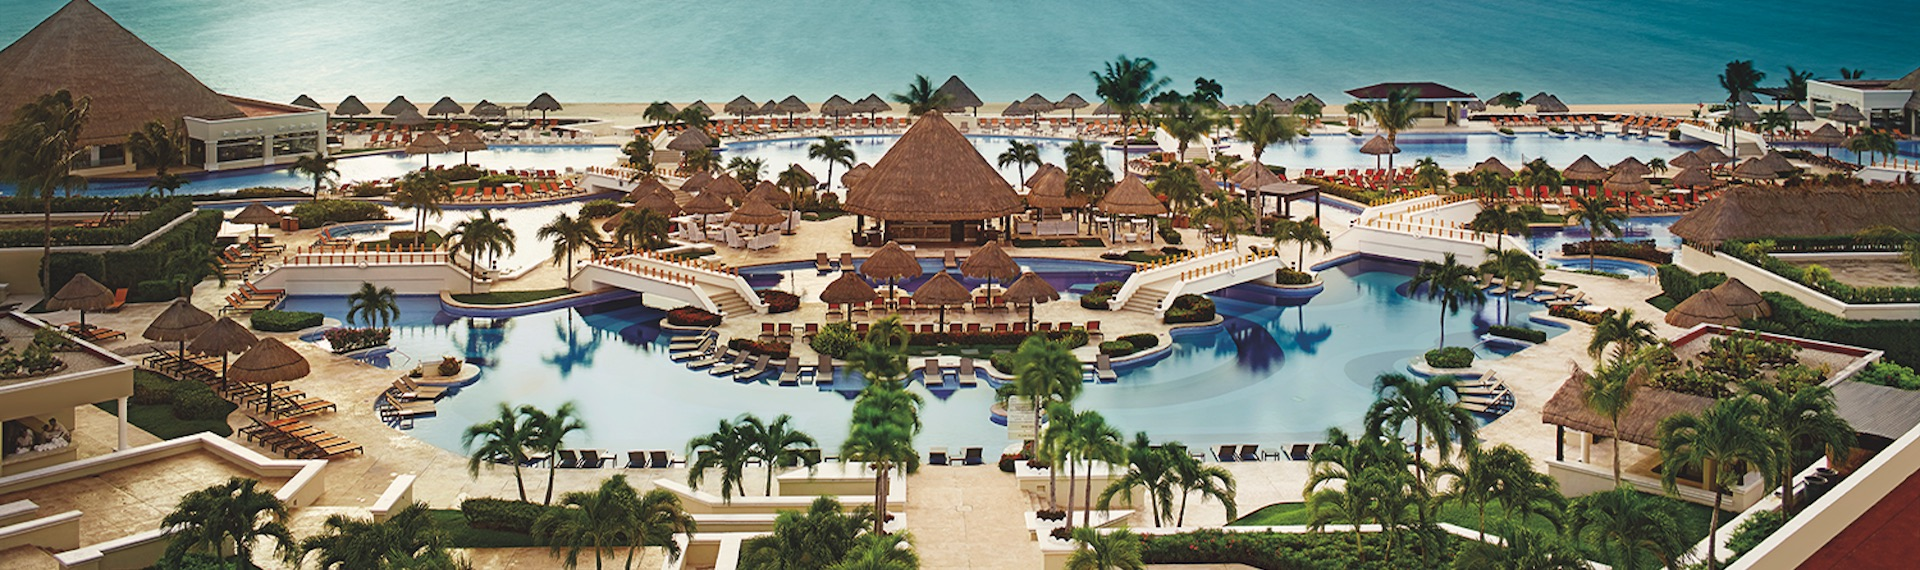 All Inclusive Resort The Value In All Inclusive Resorts The Travel Current